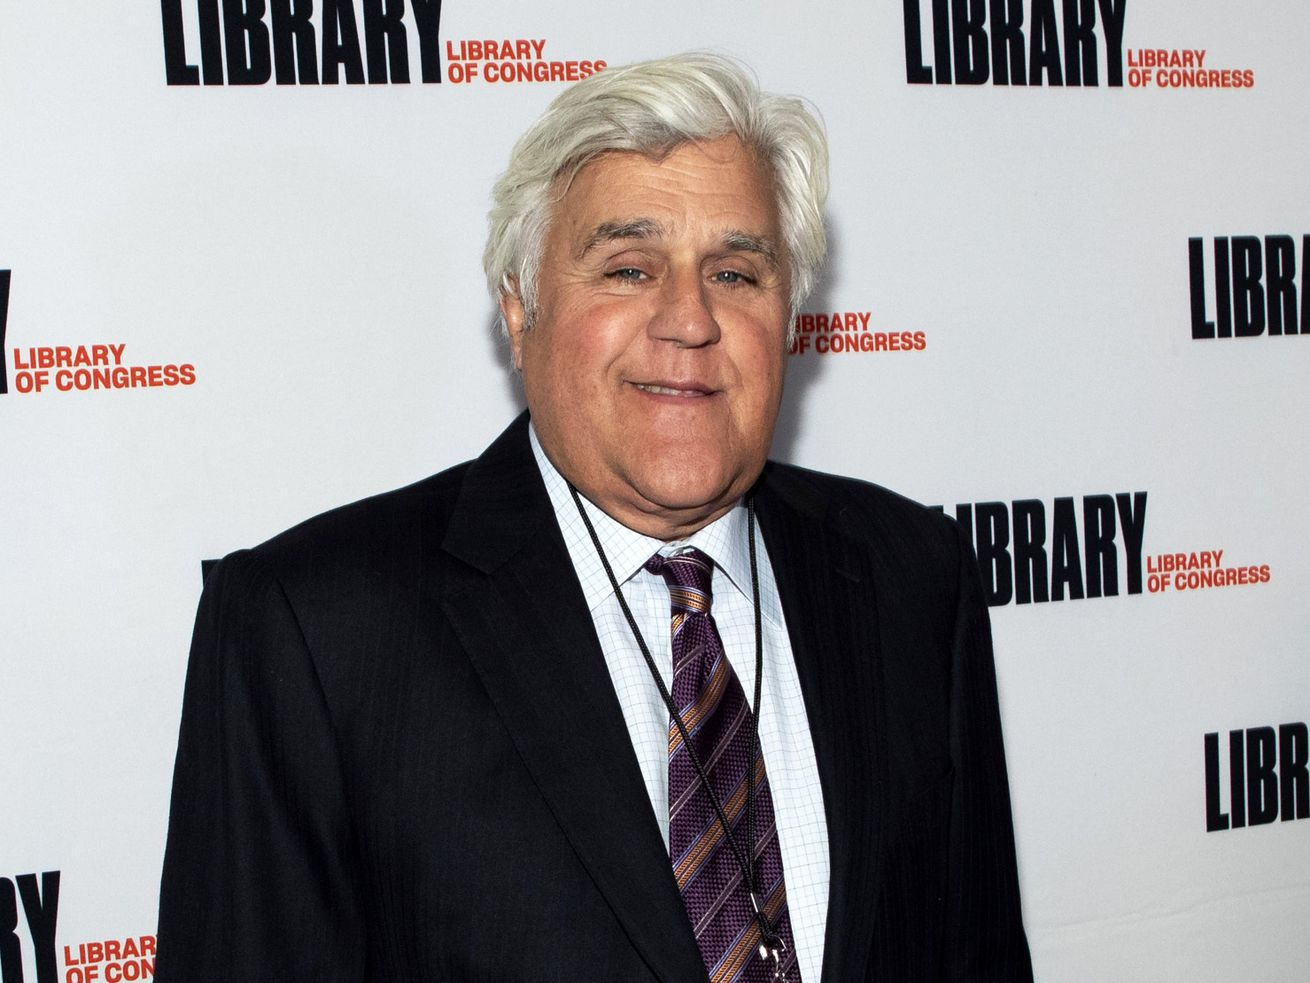 """Jay Leno attends the Gershwin Prize Honoree's Tribute Concert in Washington on March 4, 2020. Leno is host of """"You Bet Your Life,"""" a reboot of the Groucho Marx game show that debuts Monday on Fox TV stations."""